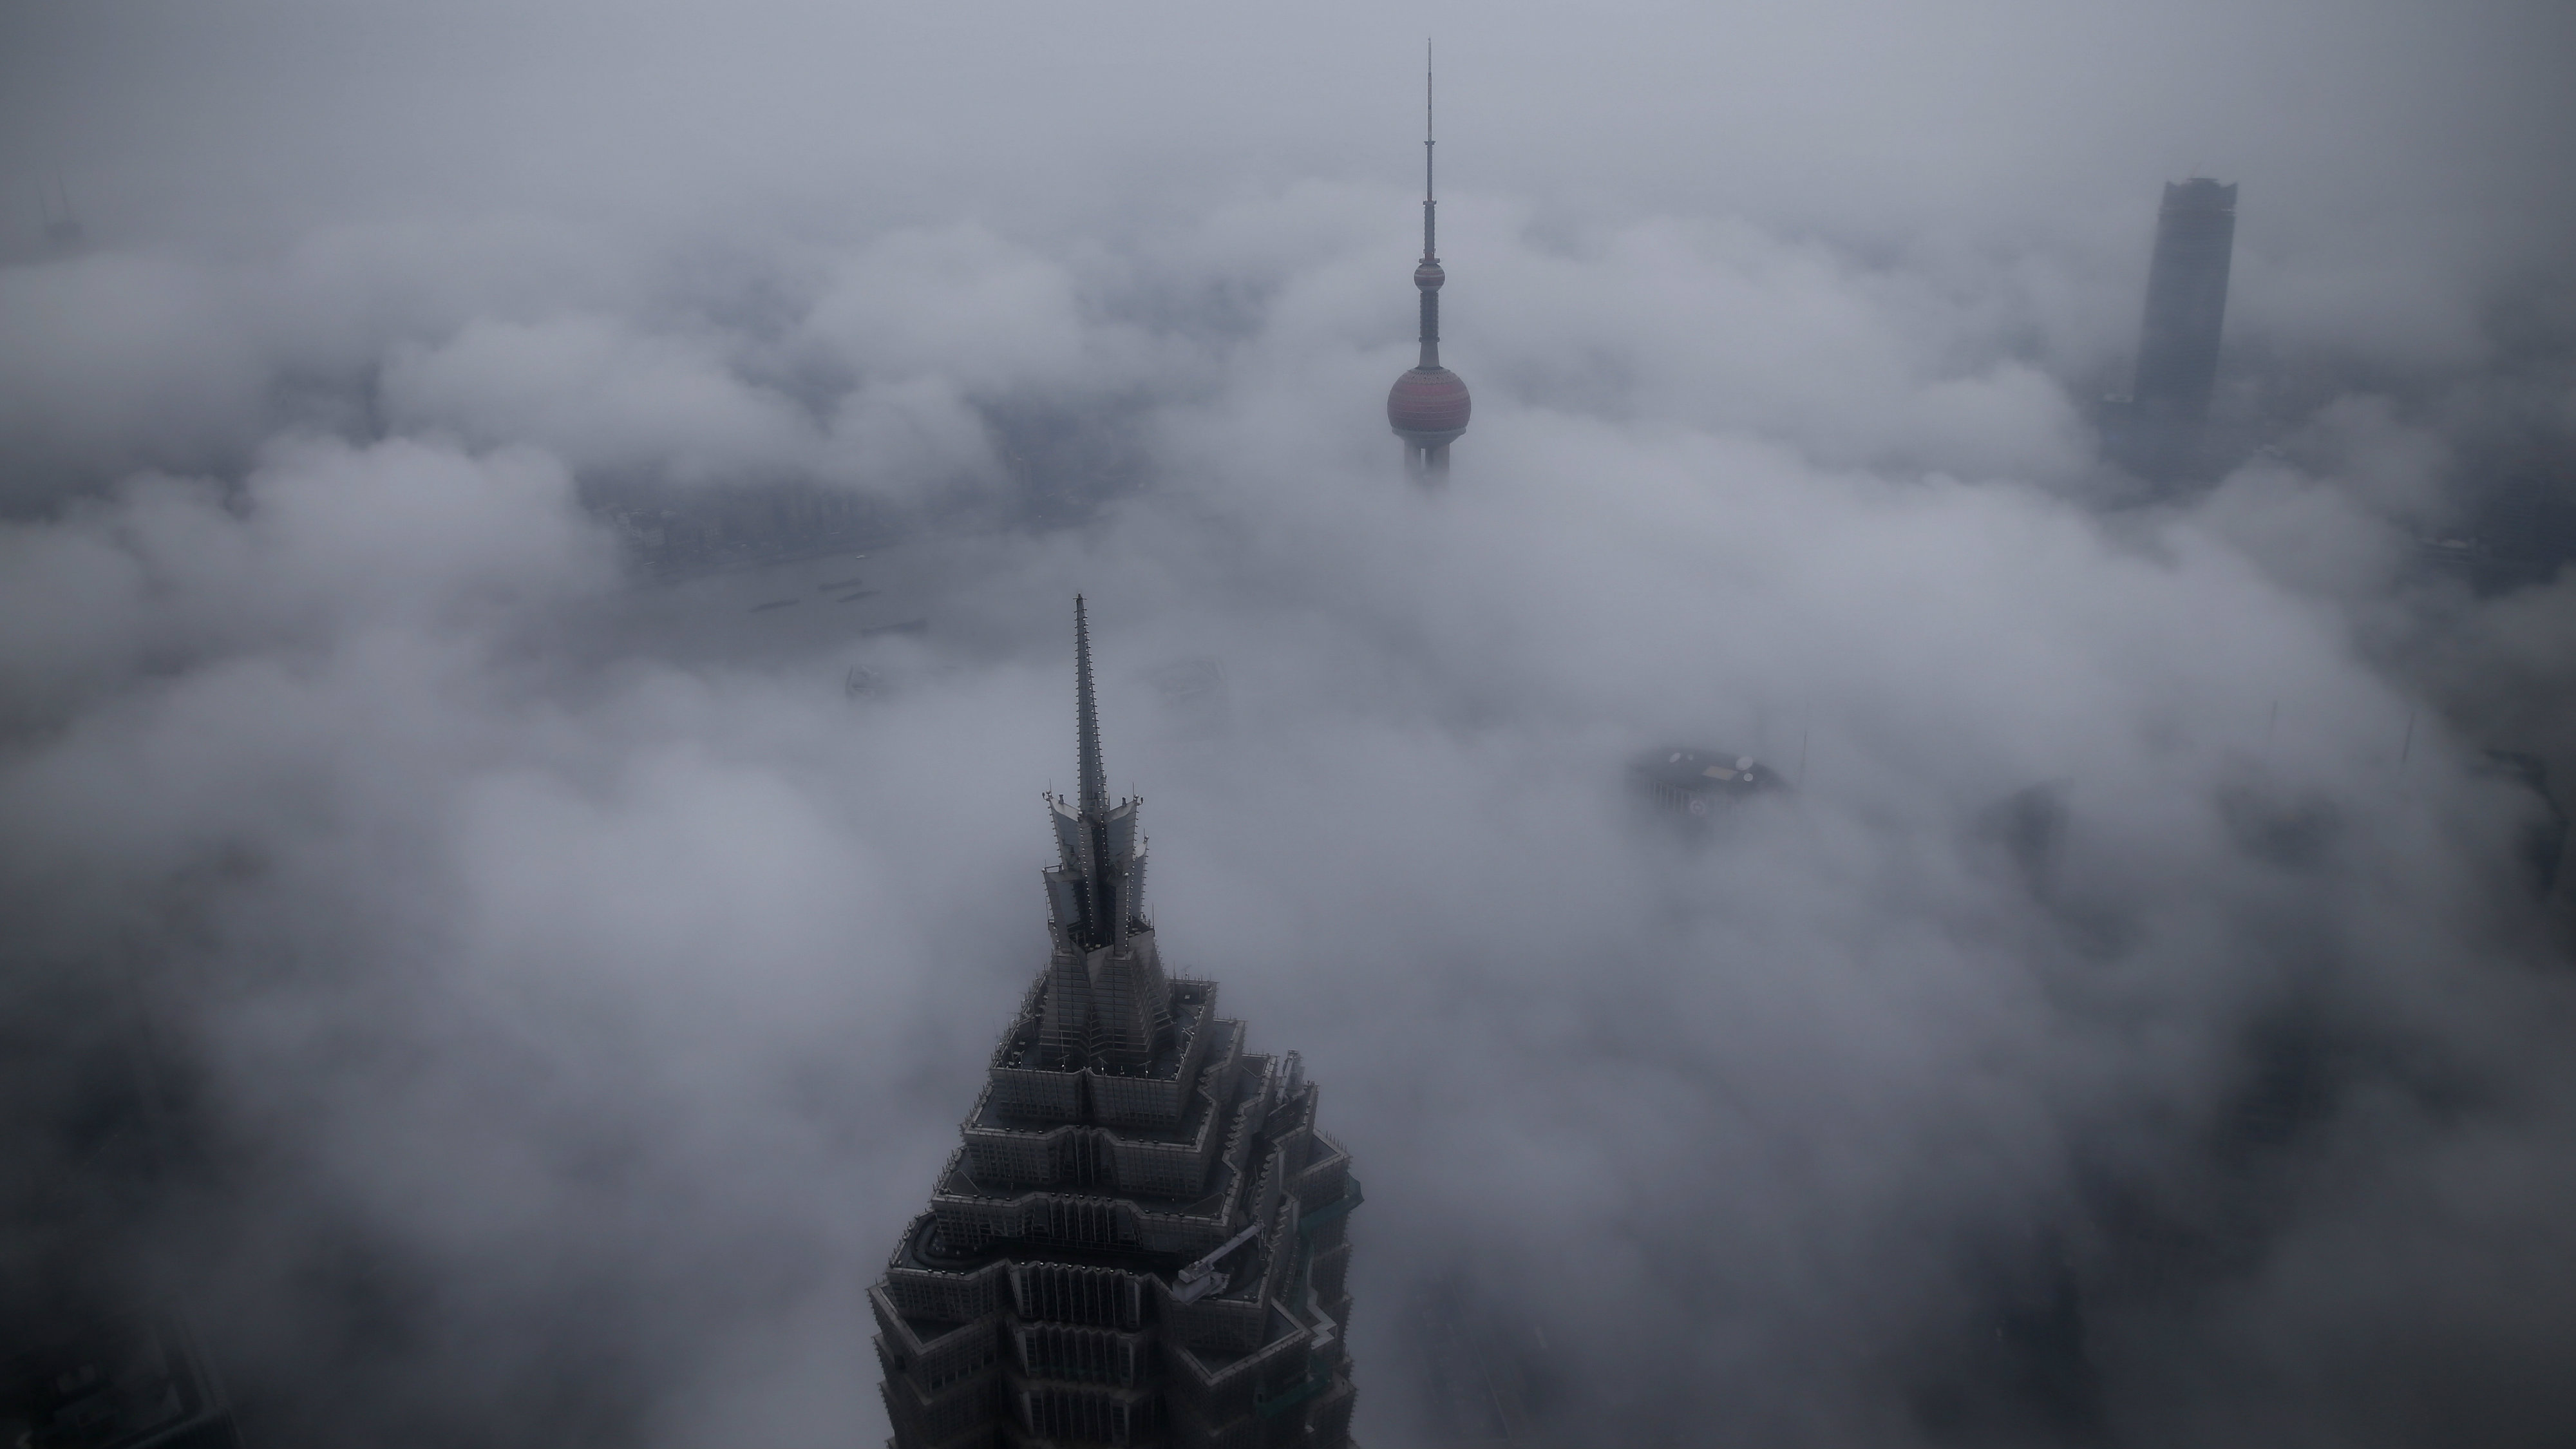 Skyscrapers Oriental Pearl Tower and Jin Mao Tower (L) are seen from the Shanghai World Financial Center, in rain at the financial district of Pudong in Shanghai, China, January 28, 2016.